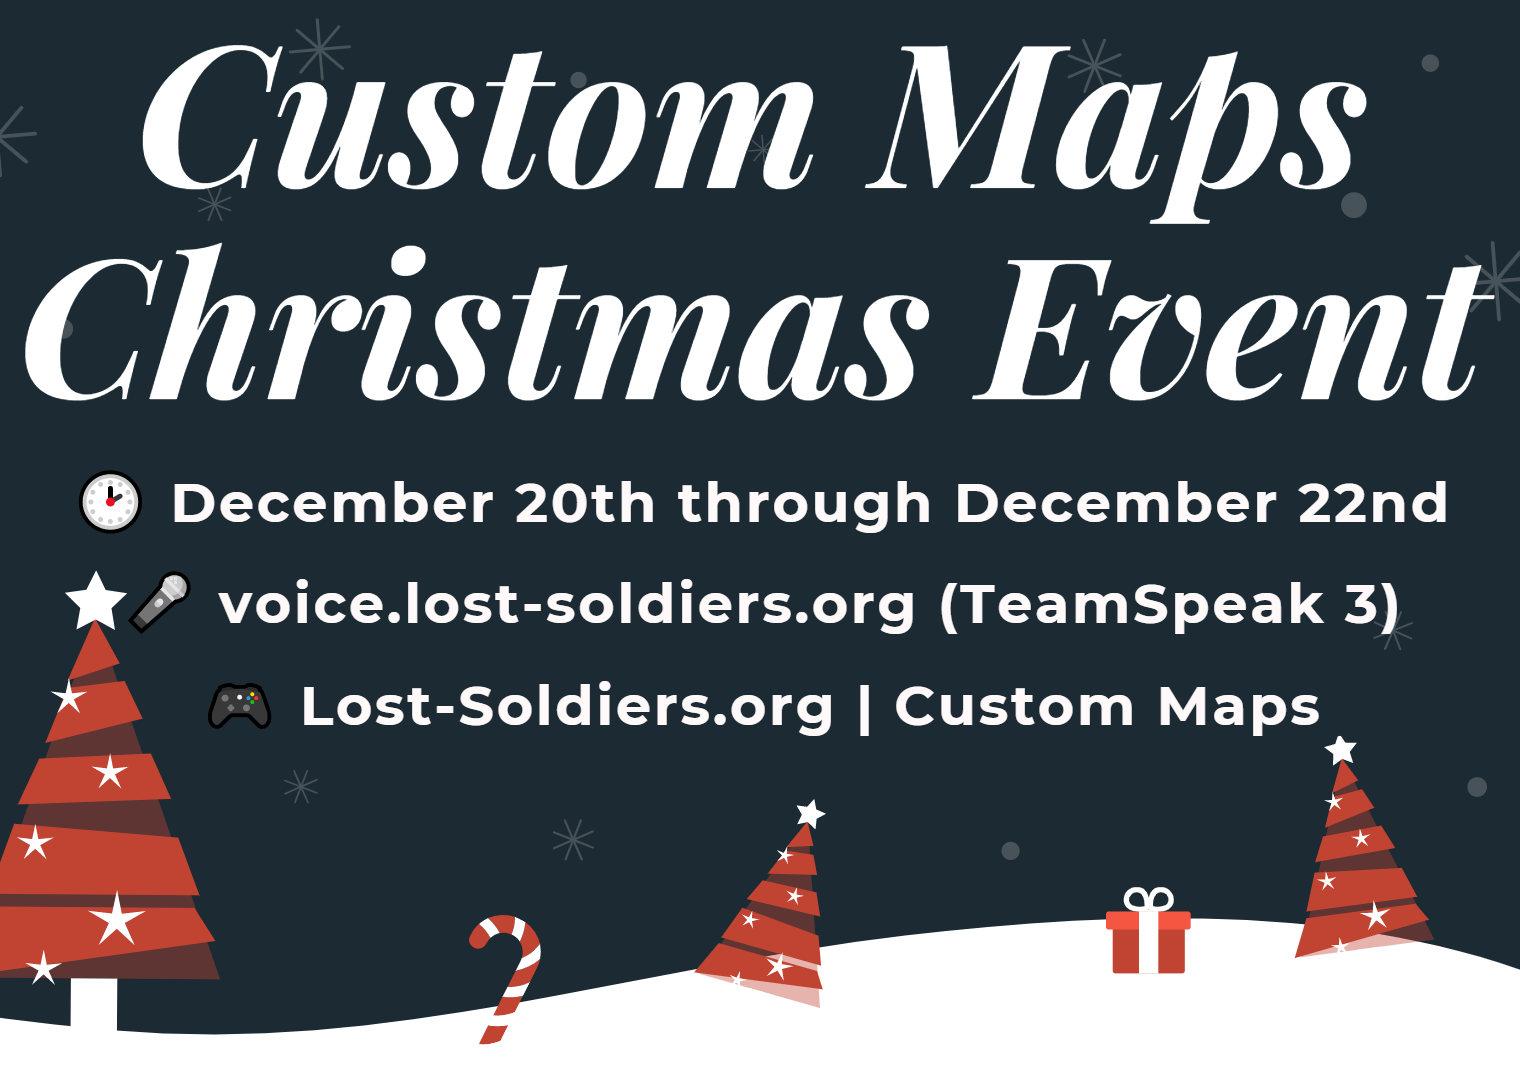 https://www.lost-soldiers.org/images/news-pics/Custom-Maps-Christmas-Event-2019-min.png